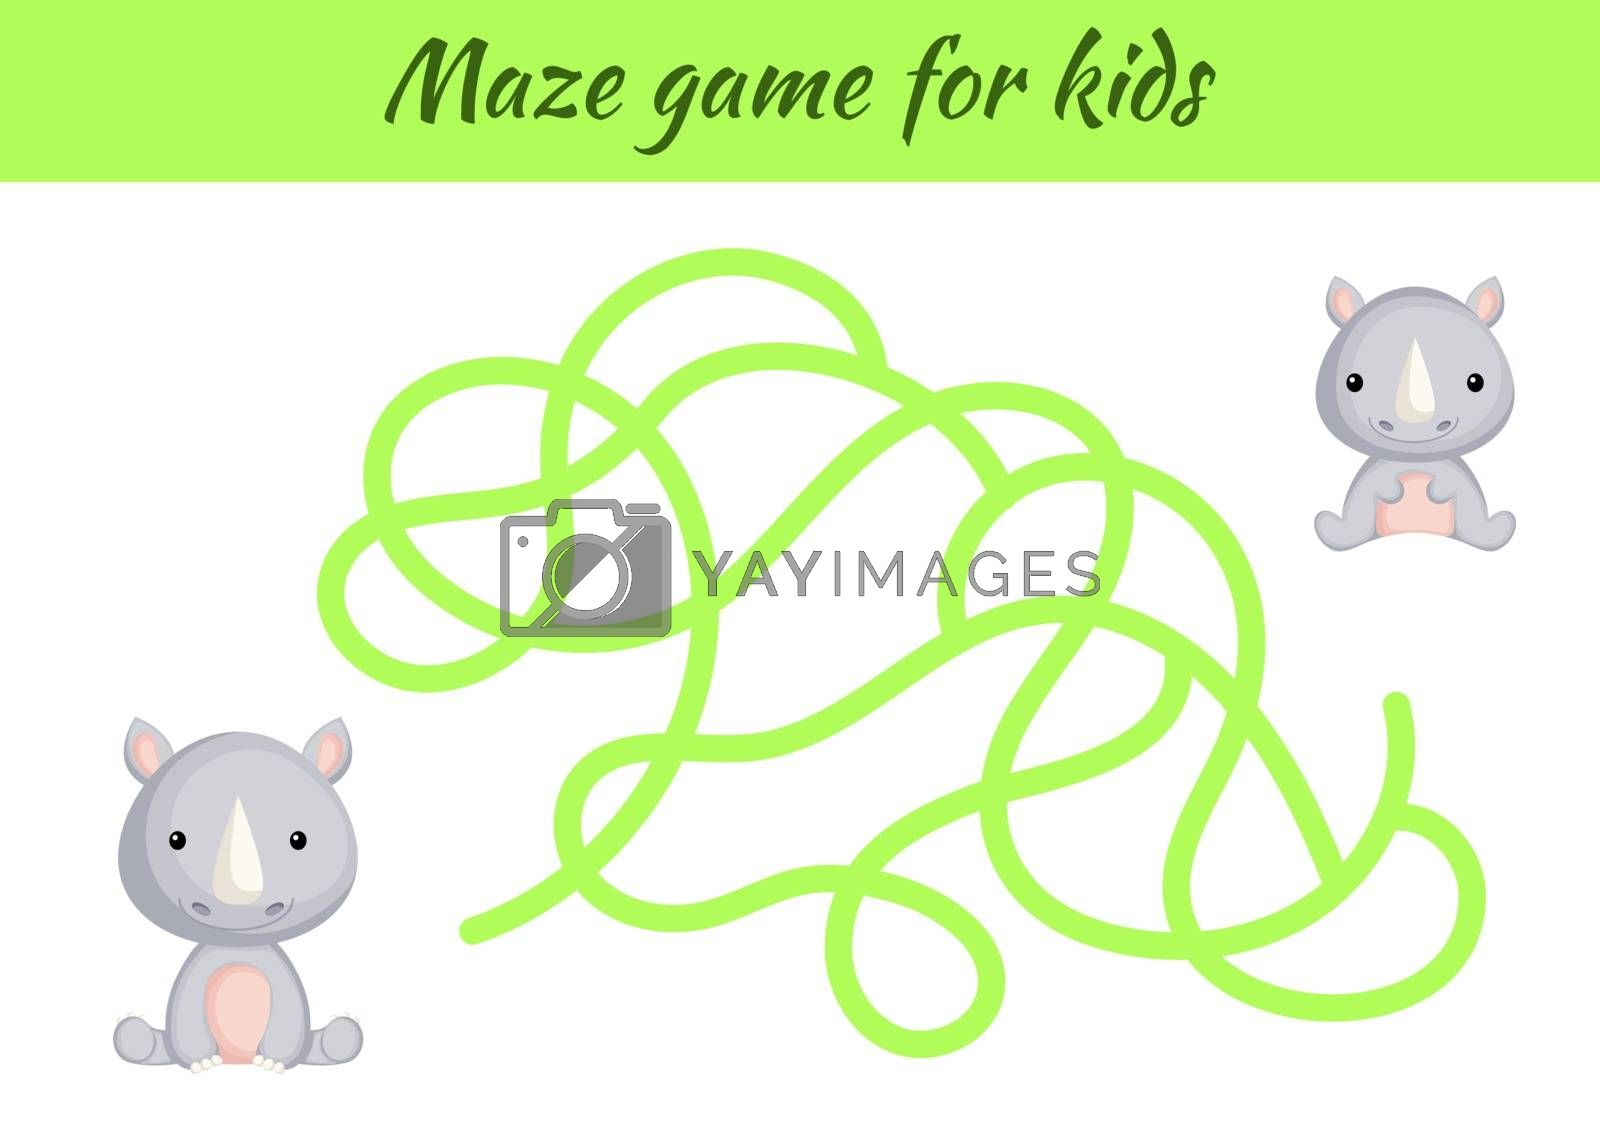 Funny maze or labyrinth game for kids. Help mother find path to baby. Education developing worksheet. Activity page. Cartoon rhino characters. Riddle for preschool. Color vector stock illustration.